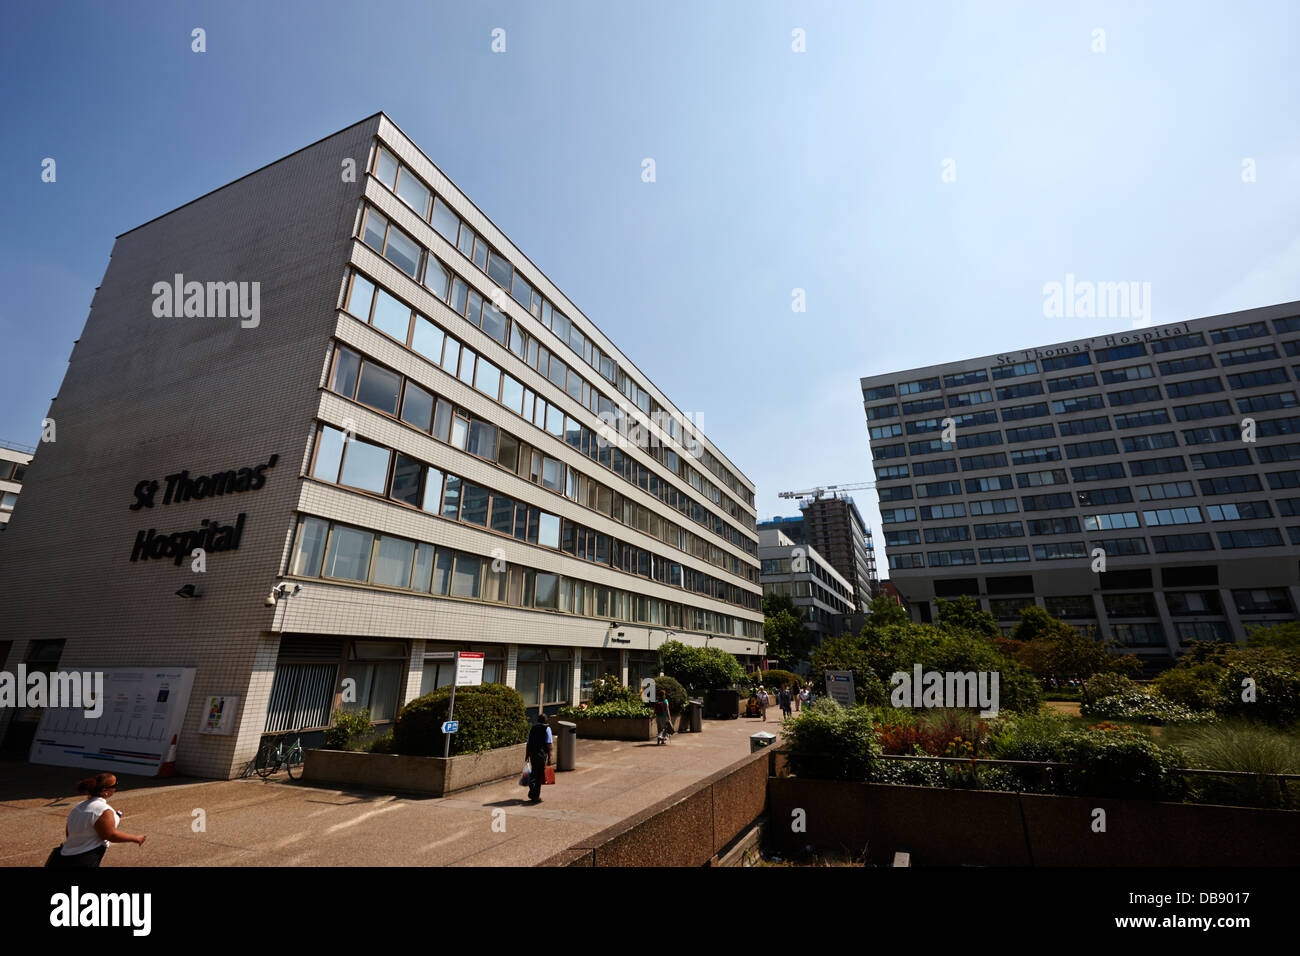 St Thomas hospital London England UK - Stock Image